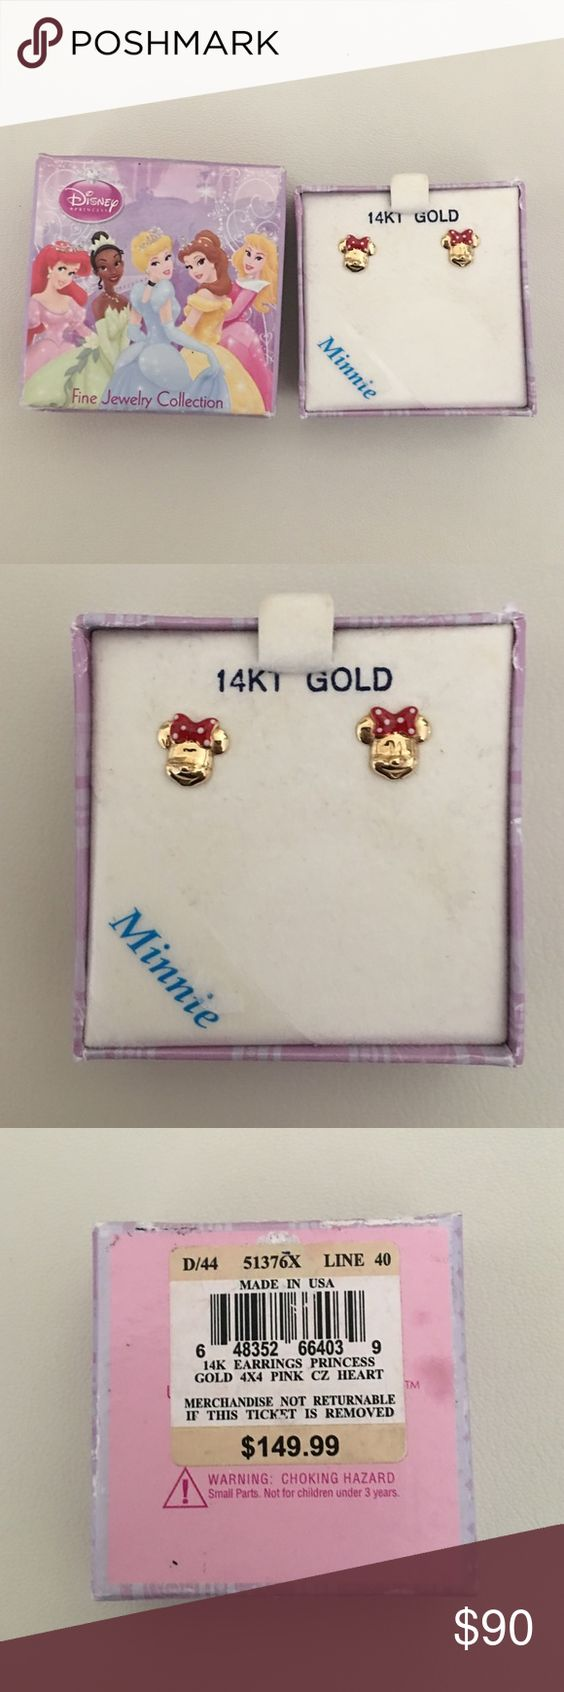 14k Gold Minnie Mouse Earrings Brand New In Box 14k Gold Minnie Mouse  Earrings Perfect